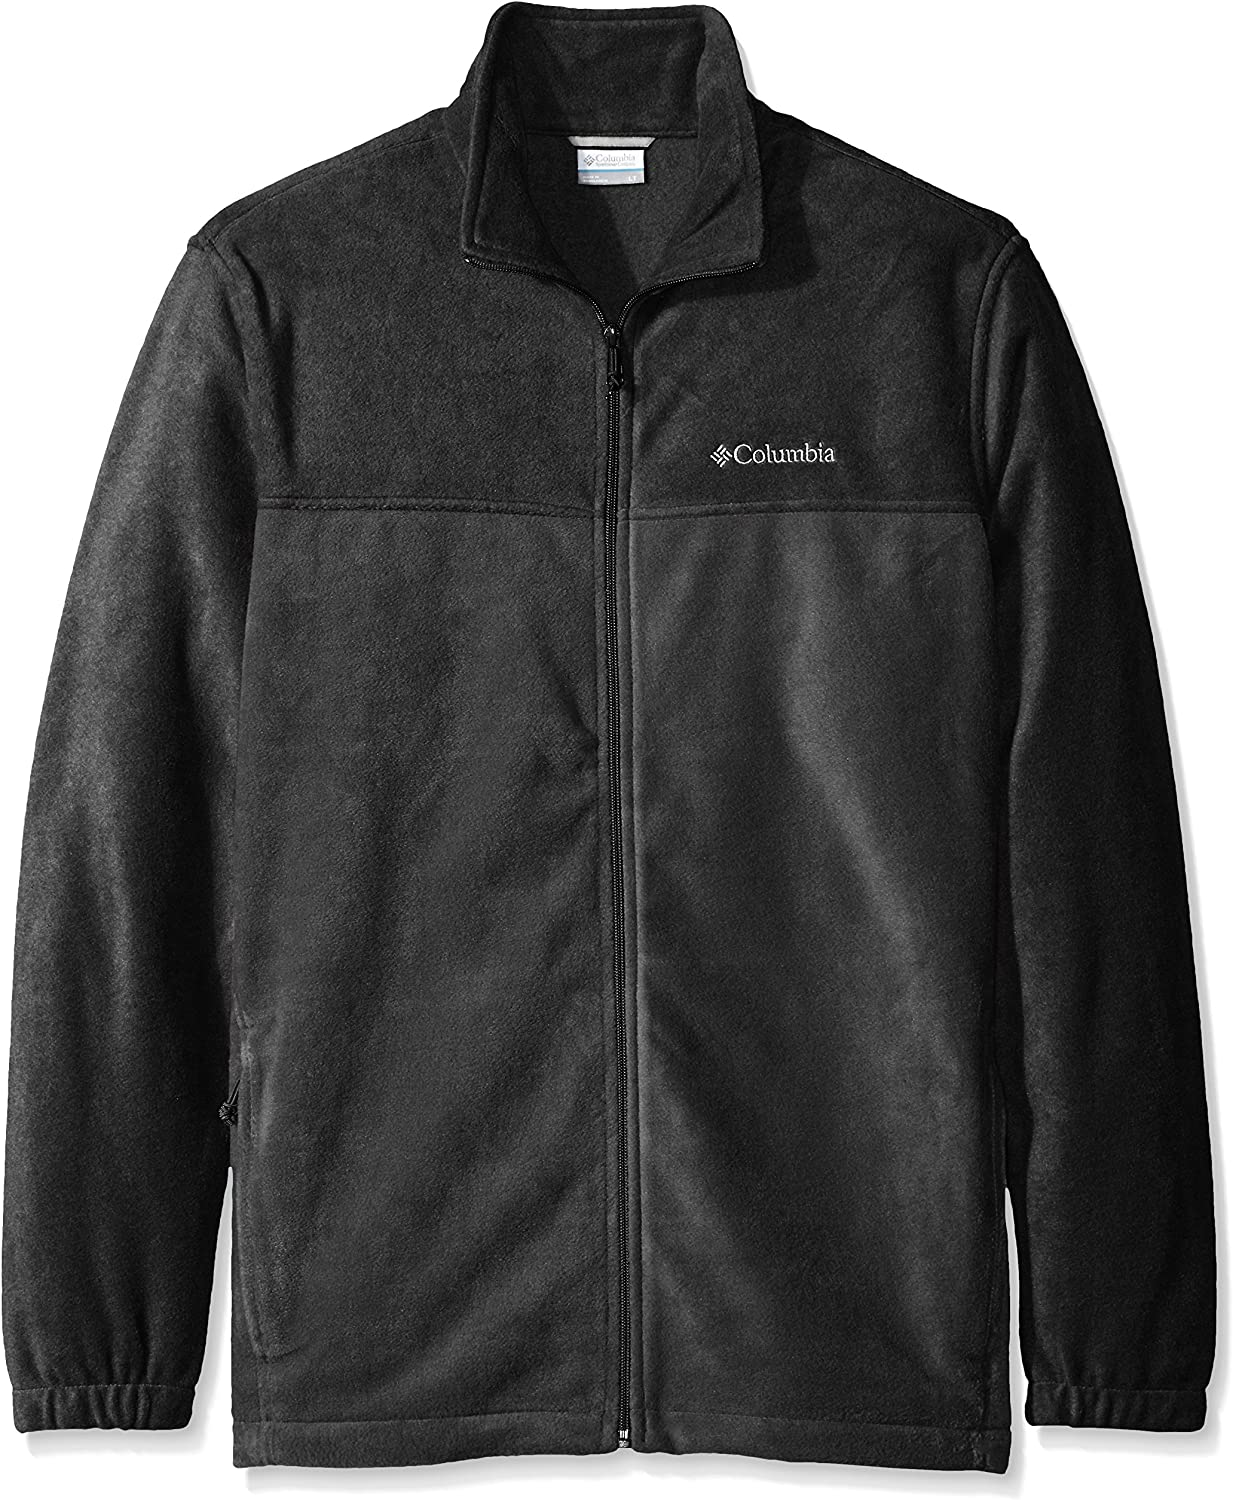 Columbia Mens Steens Mountain Full Zip 2.0 Soft Fleece with Classic Fit